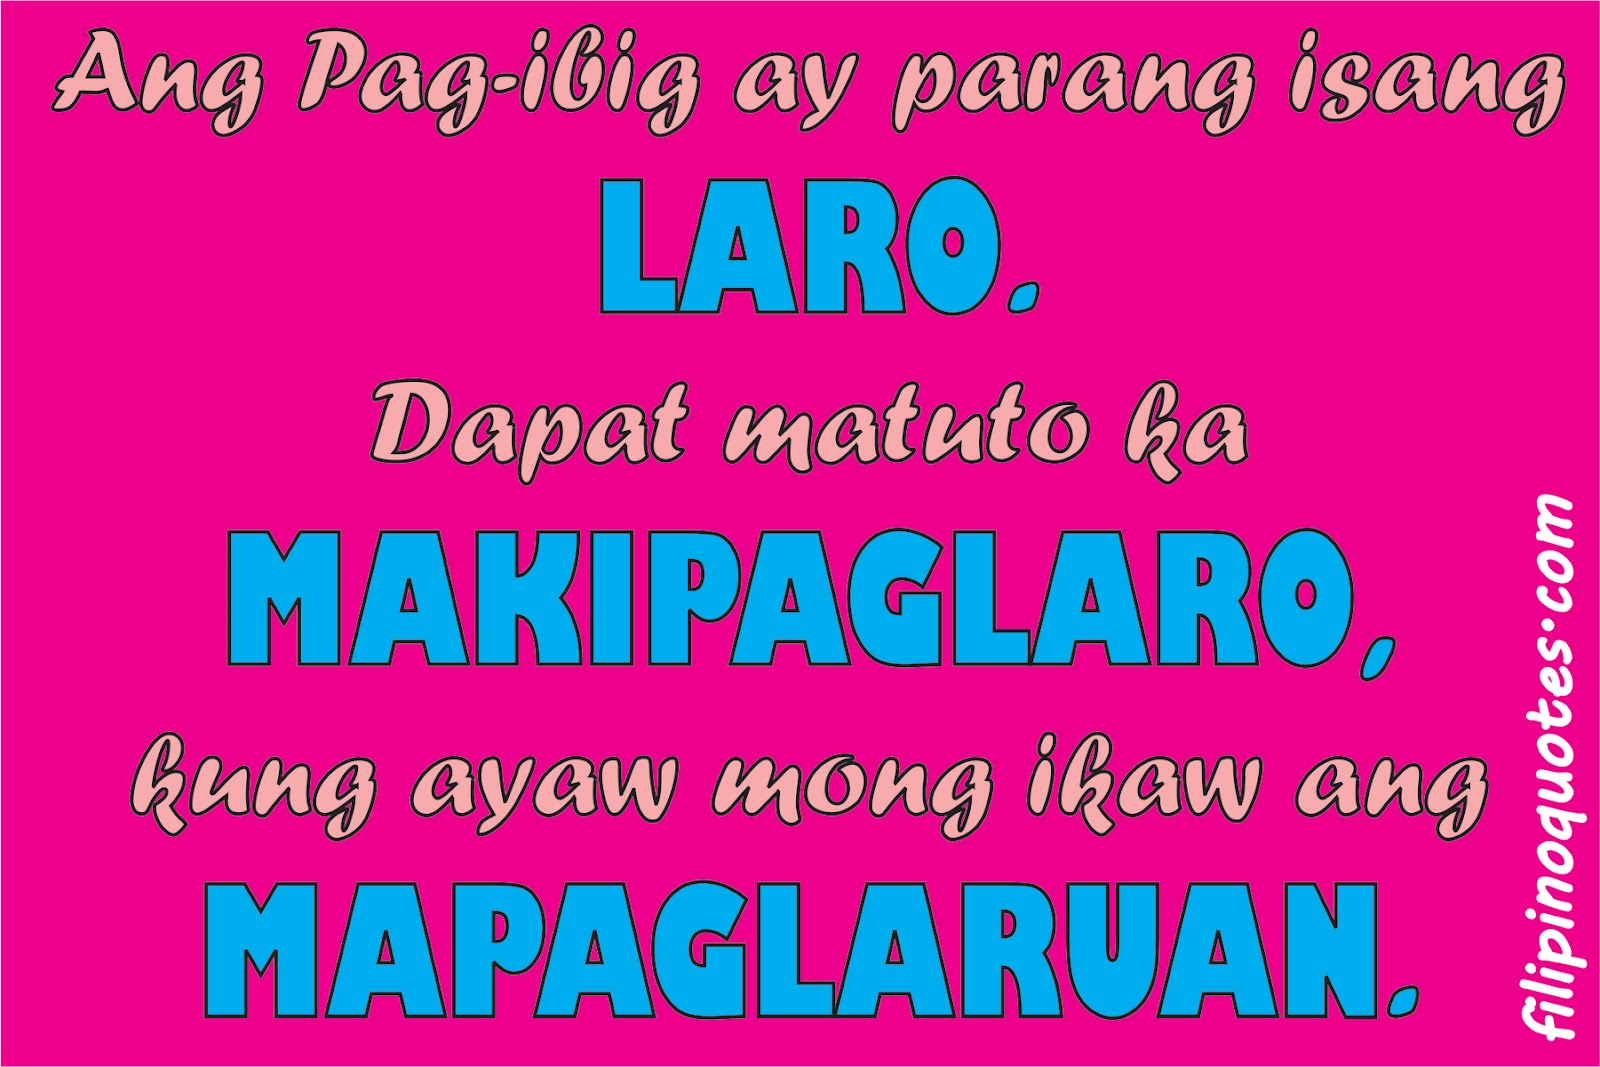 Quotes About Love And Friendship Tagalog Twitter : ... tagalog love quotes www filipinoquotes com tagalog love quotes